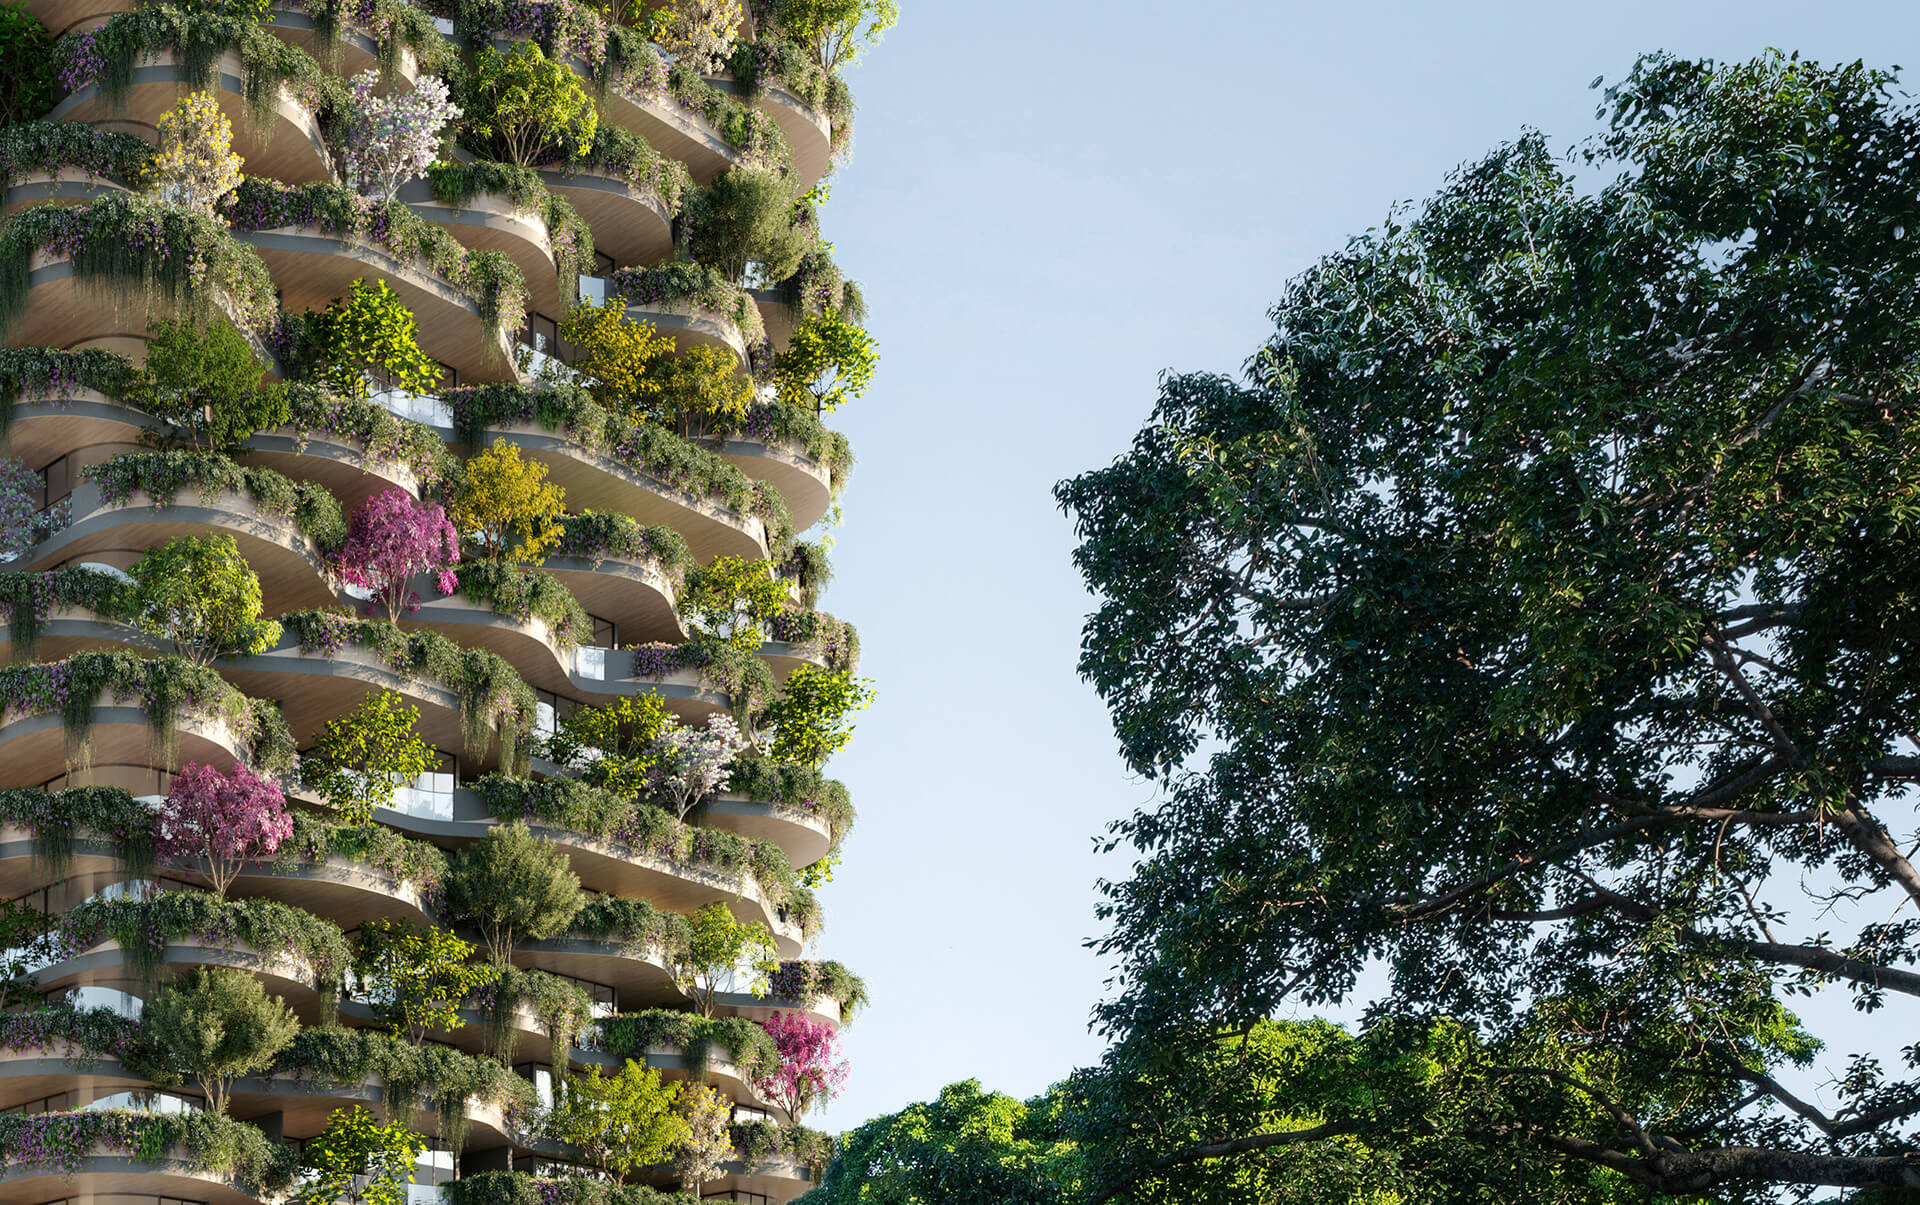 Living greenery on the façade is an integral component of the design | Urban Forest by Koichi Takada Architects | STIRworld